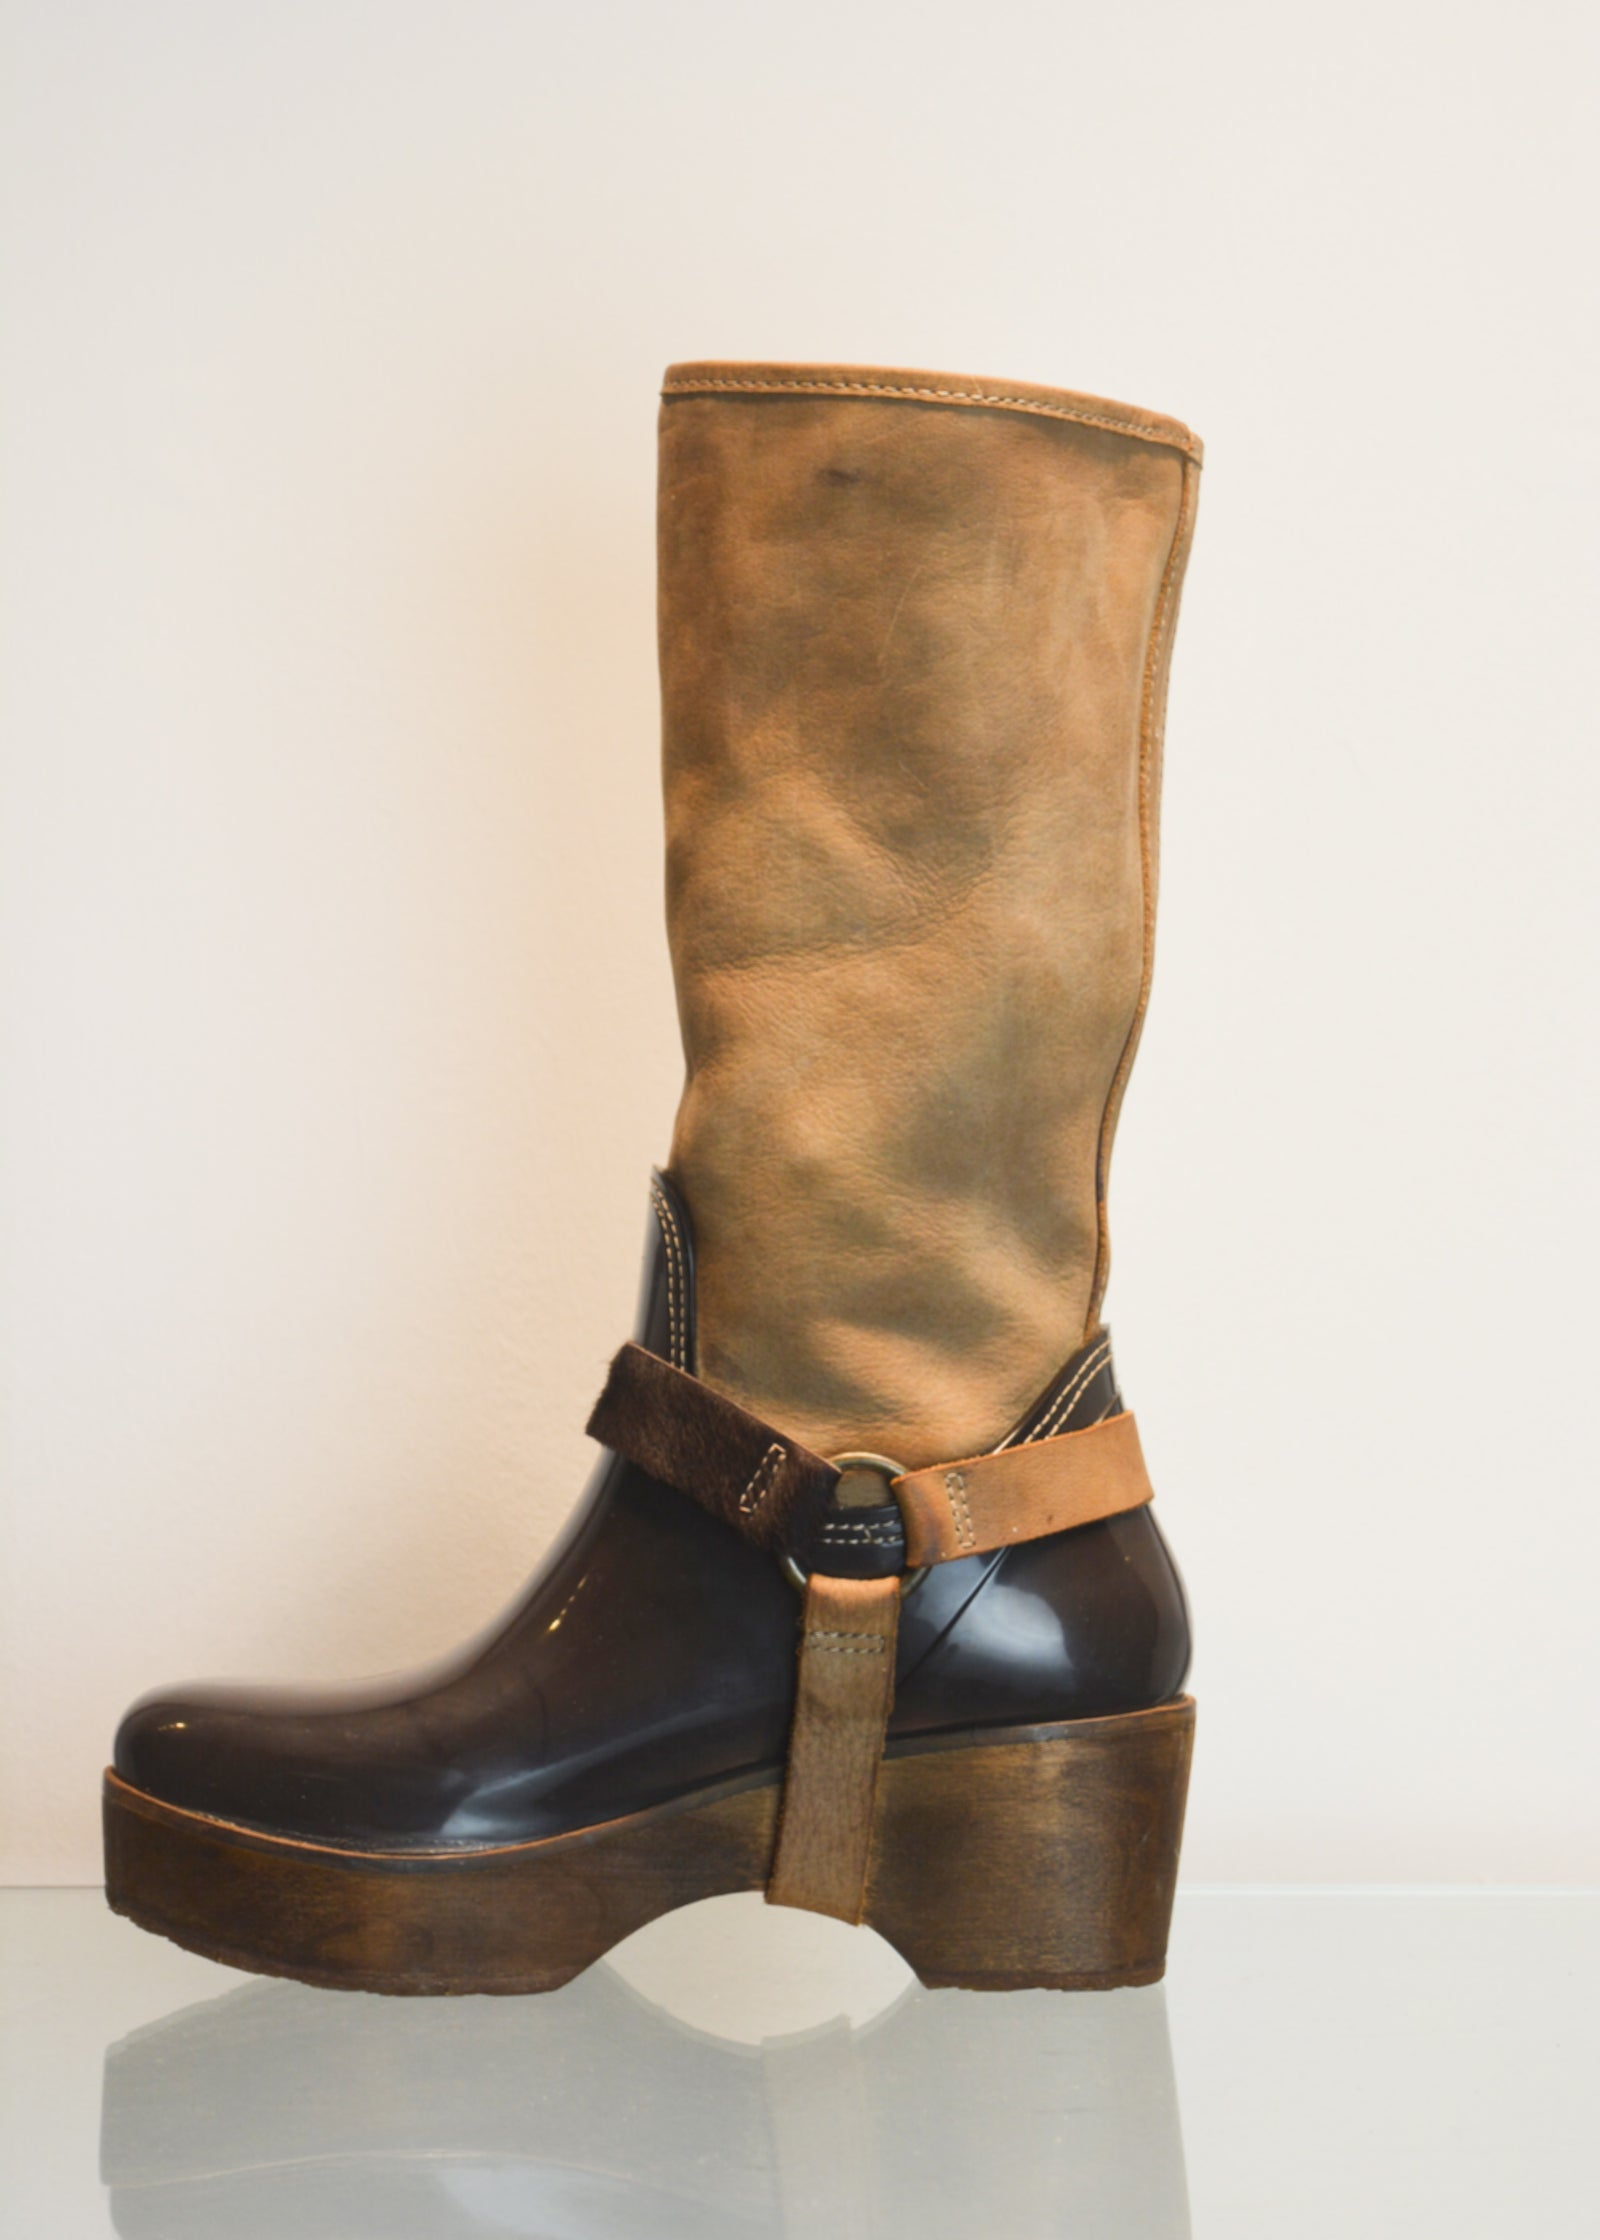 PREWORN - 'CUBANAS' Tribal Wellies - Size 5 UK (38)